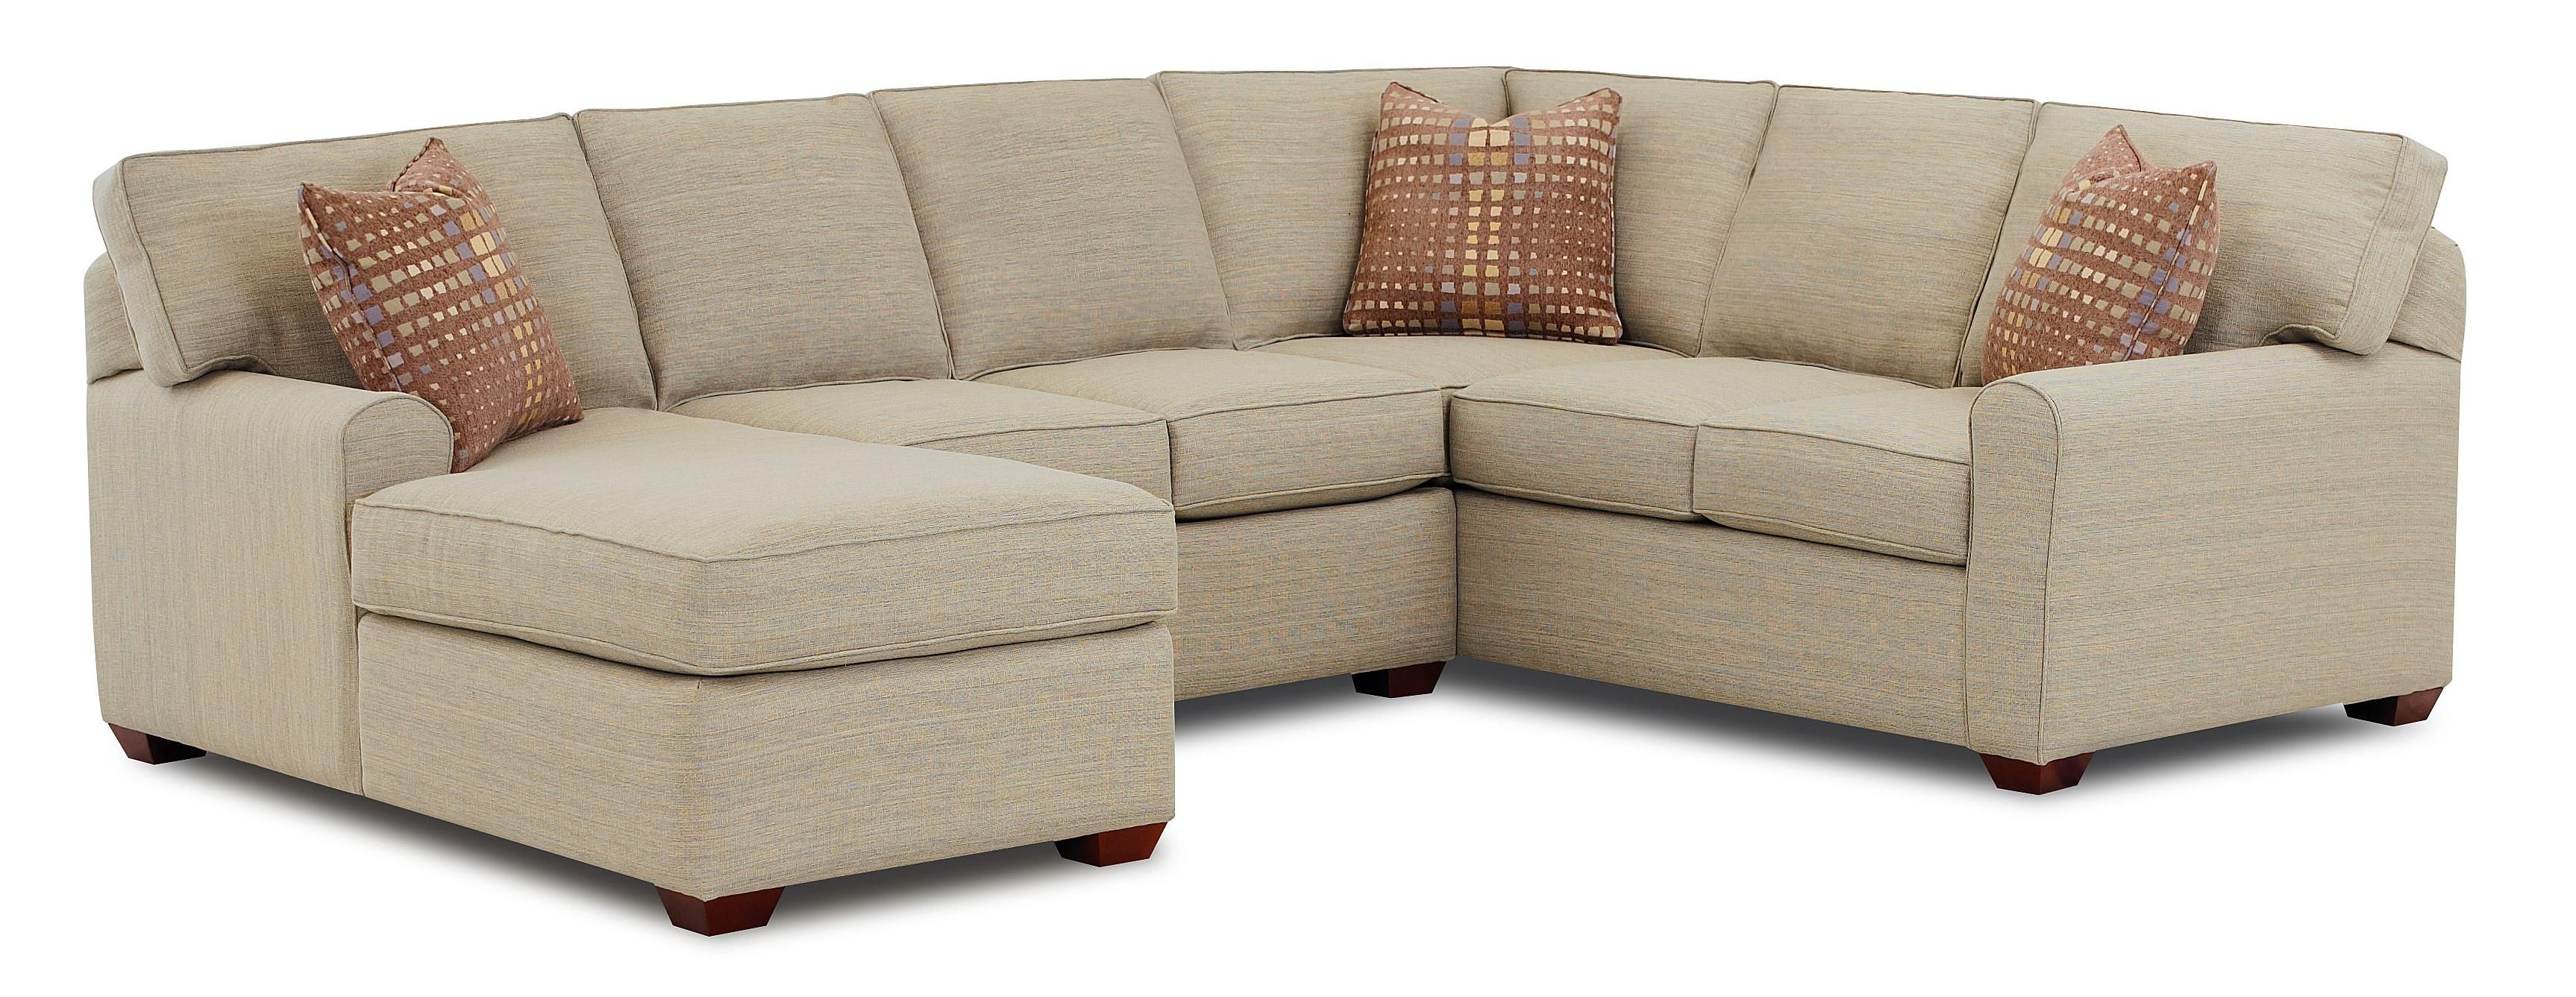 Hybrid Sectional Sofa with Left Facing Chaise Lounge by Klaussner